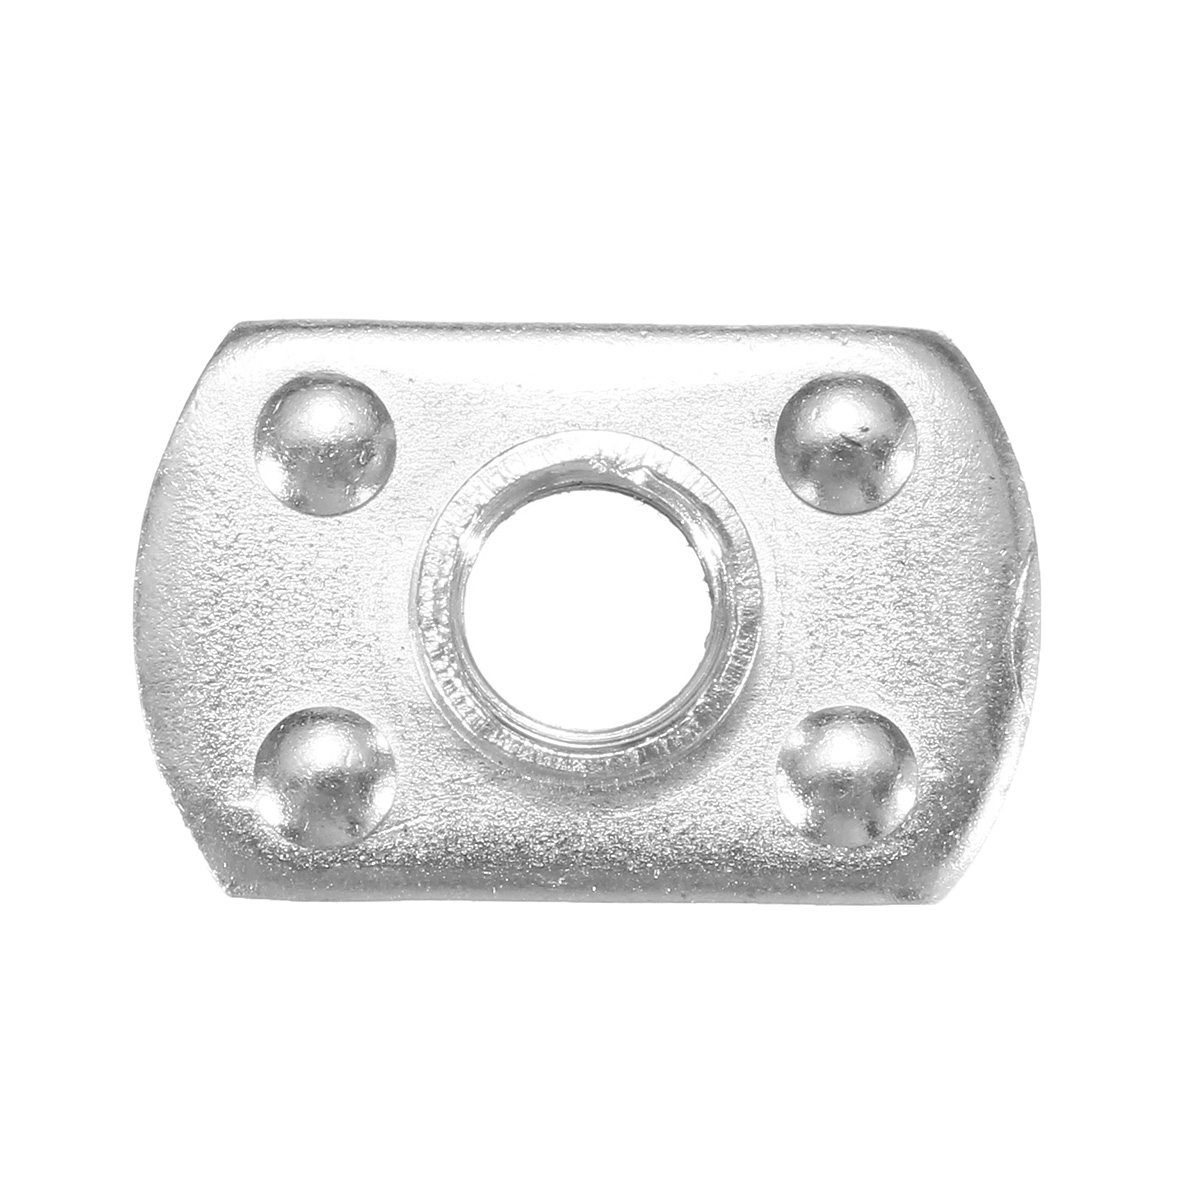 24x hard top fastener thumb screw nut plate washer fit for jeep wrangler yj jk in nuts bolts from automobiles motorcycles on aliexpress com alibaba  [ 1200 x 1200 Pixel ]